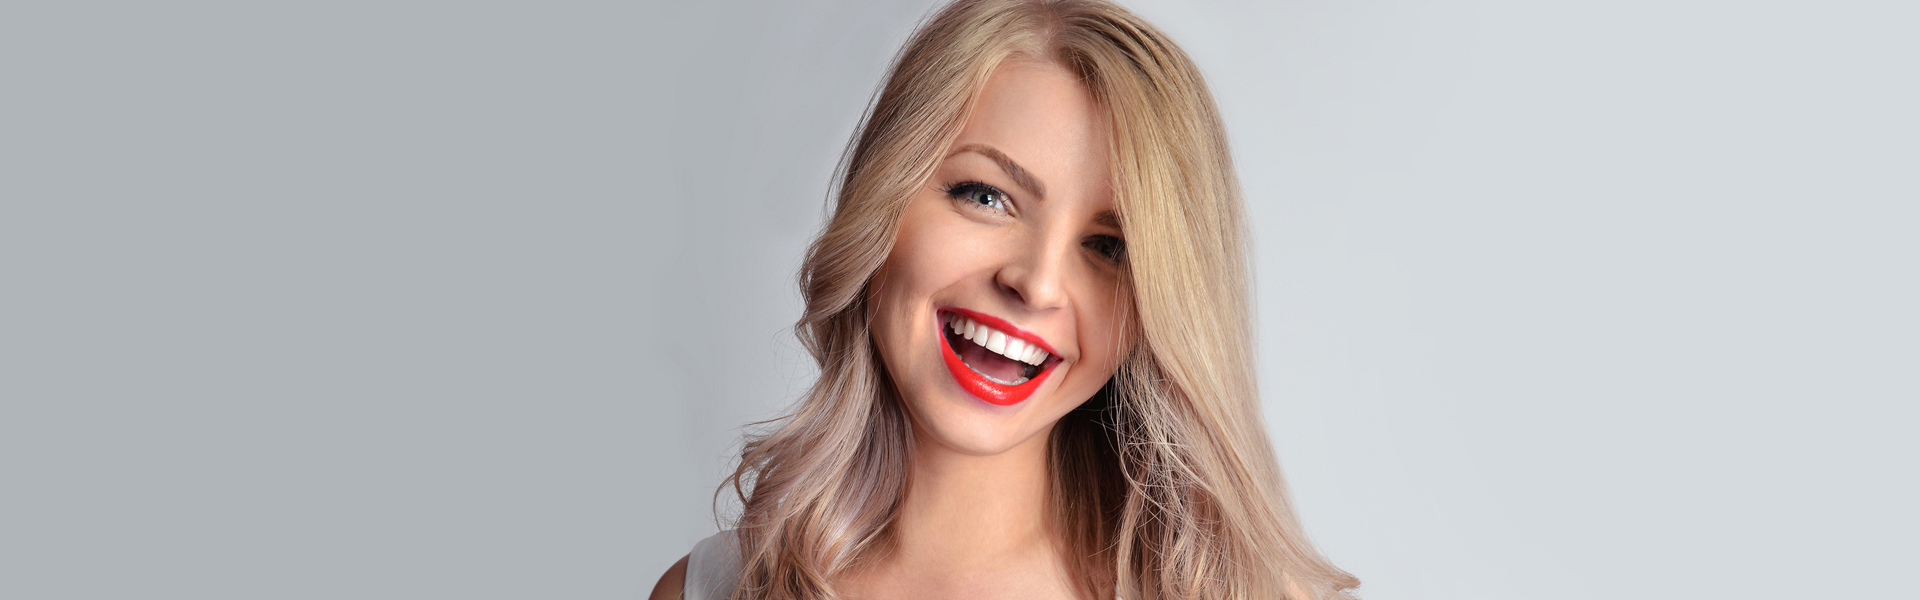 Exceptional Dentistry- Are tooth-colored fillings safe?